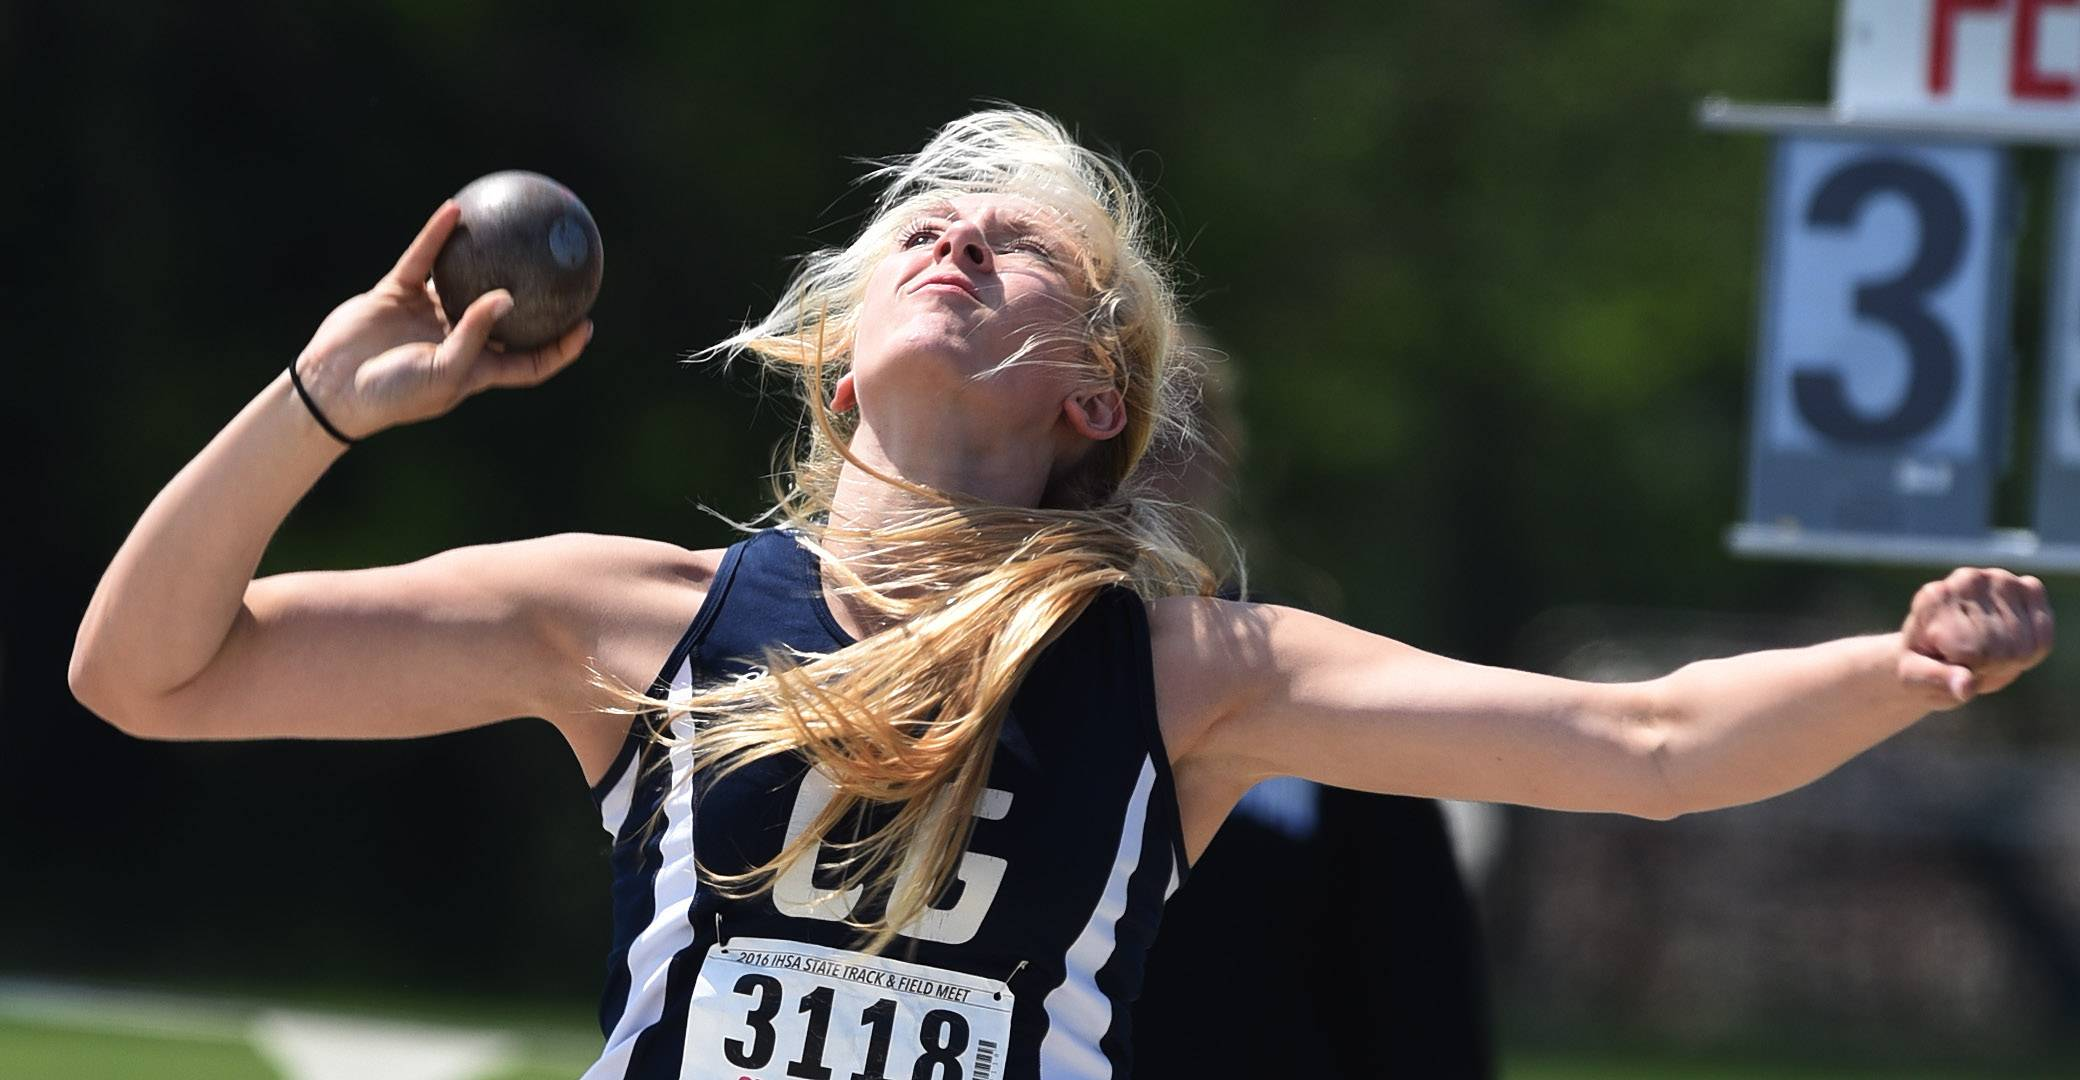 Girls track and field: Cary-Grove's Freeman state discus champ